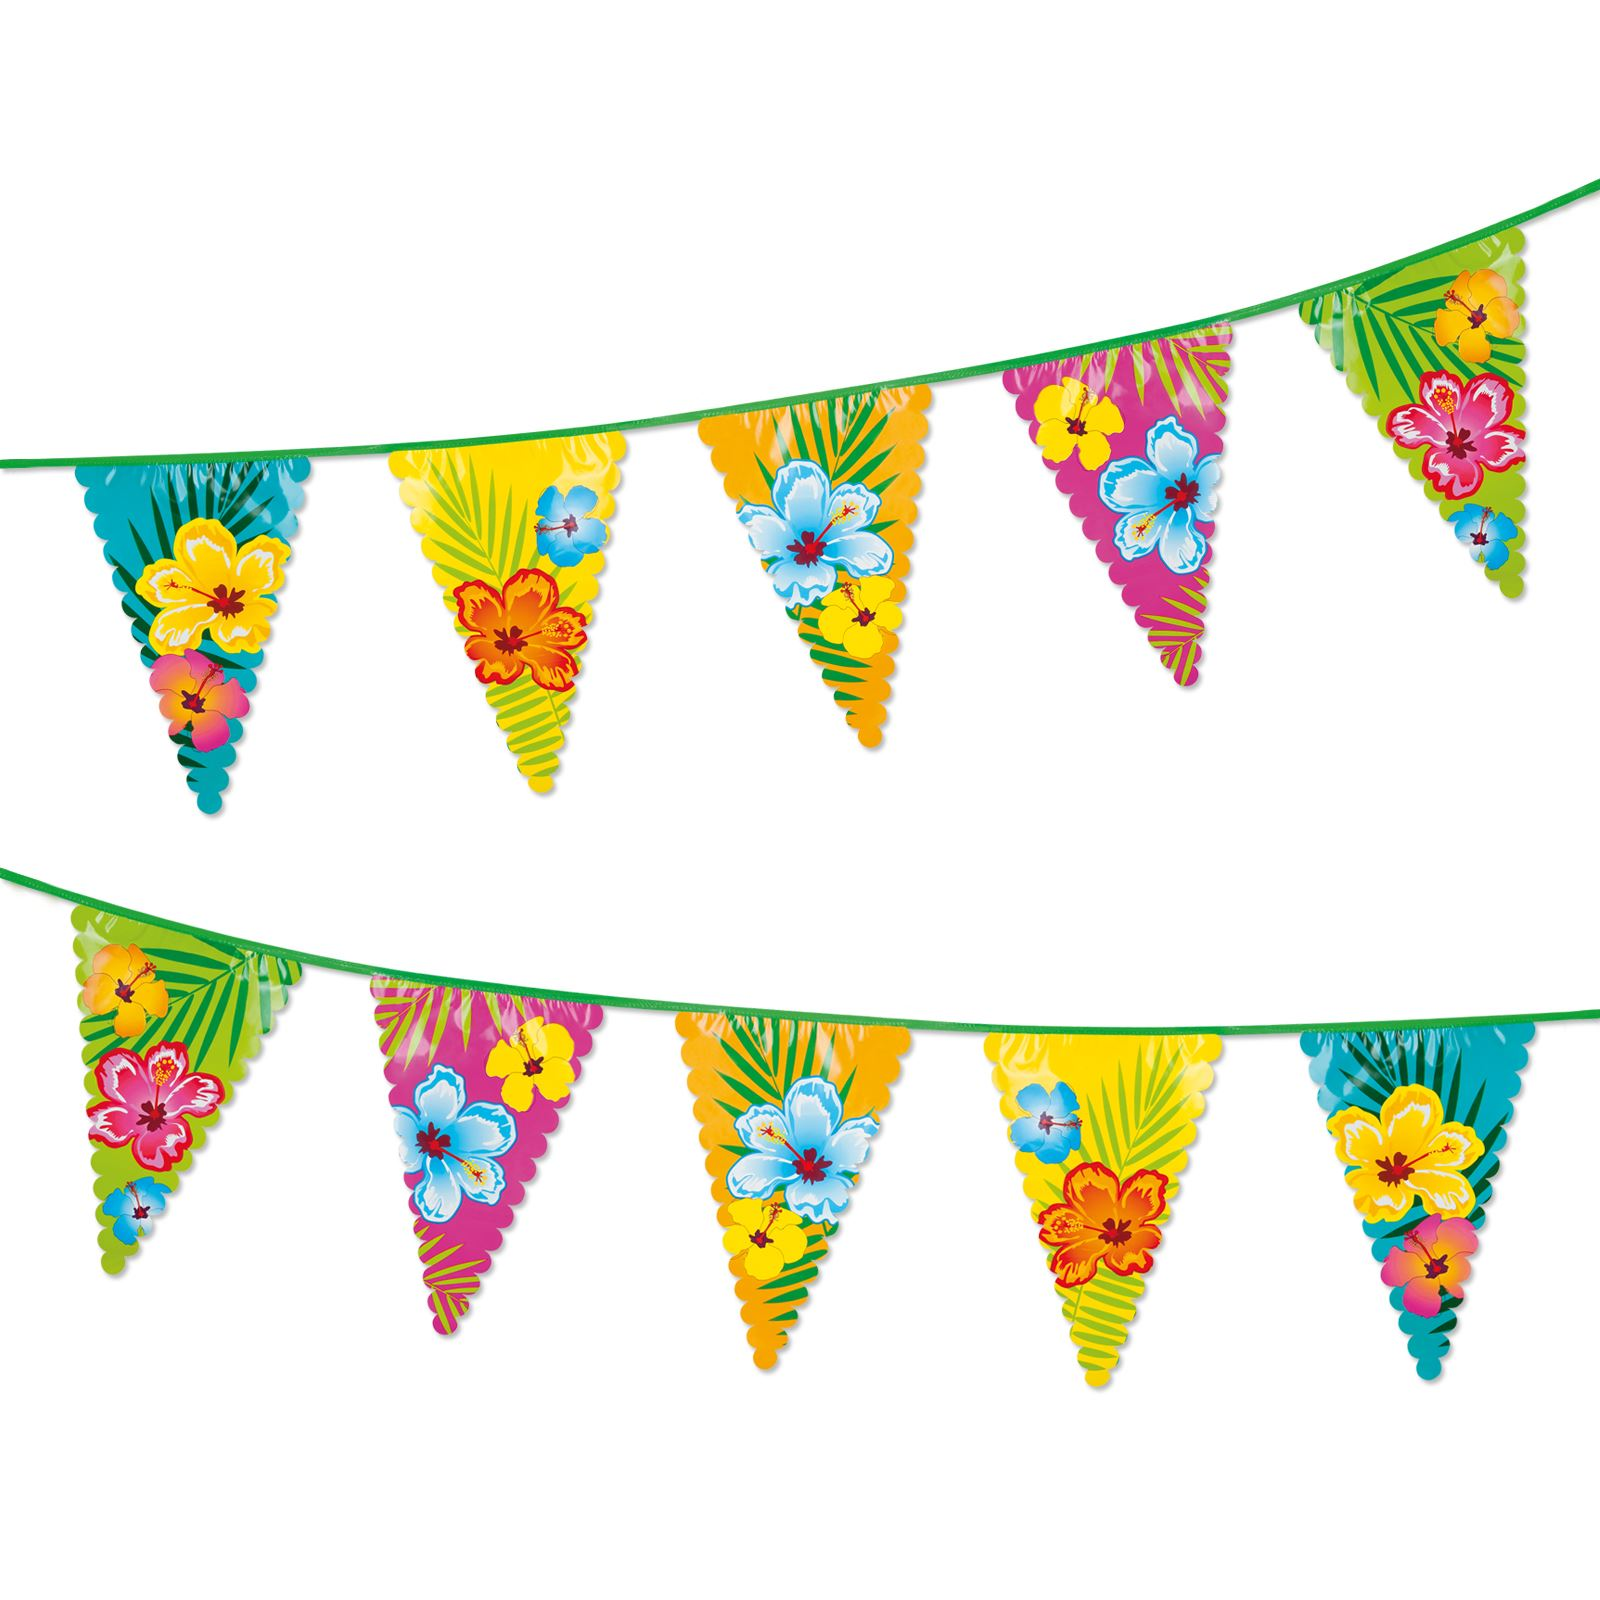 Summer pennant banner clipart clipart transparent stock Pennant clipart summer - 196 transparent clip arts, images ... clipart transparent stock